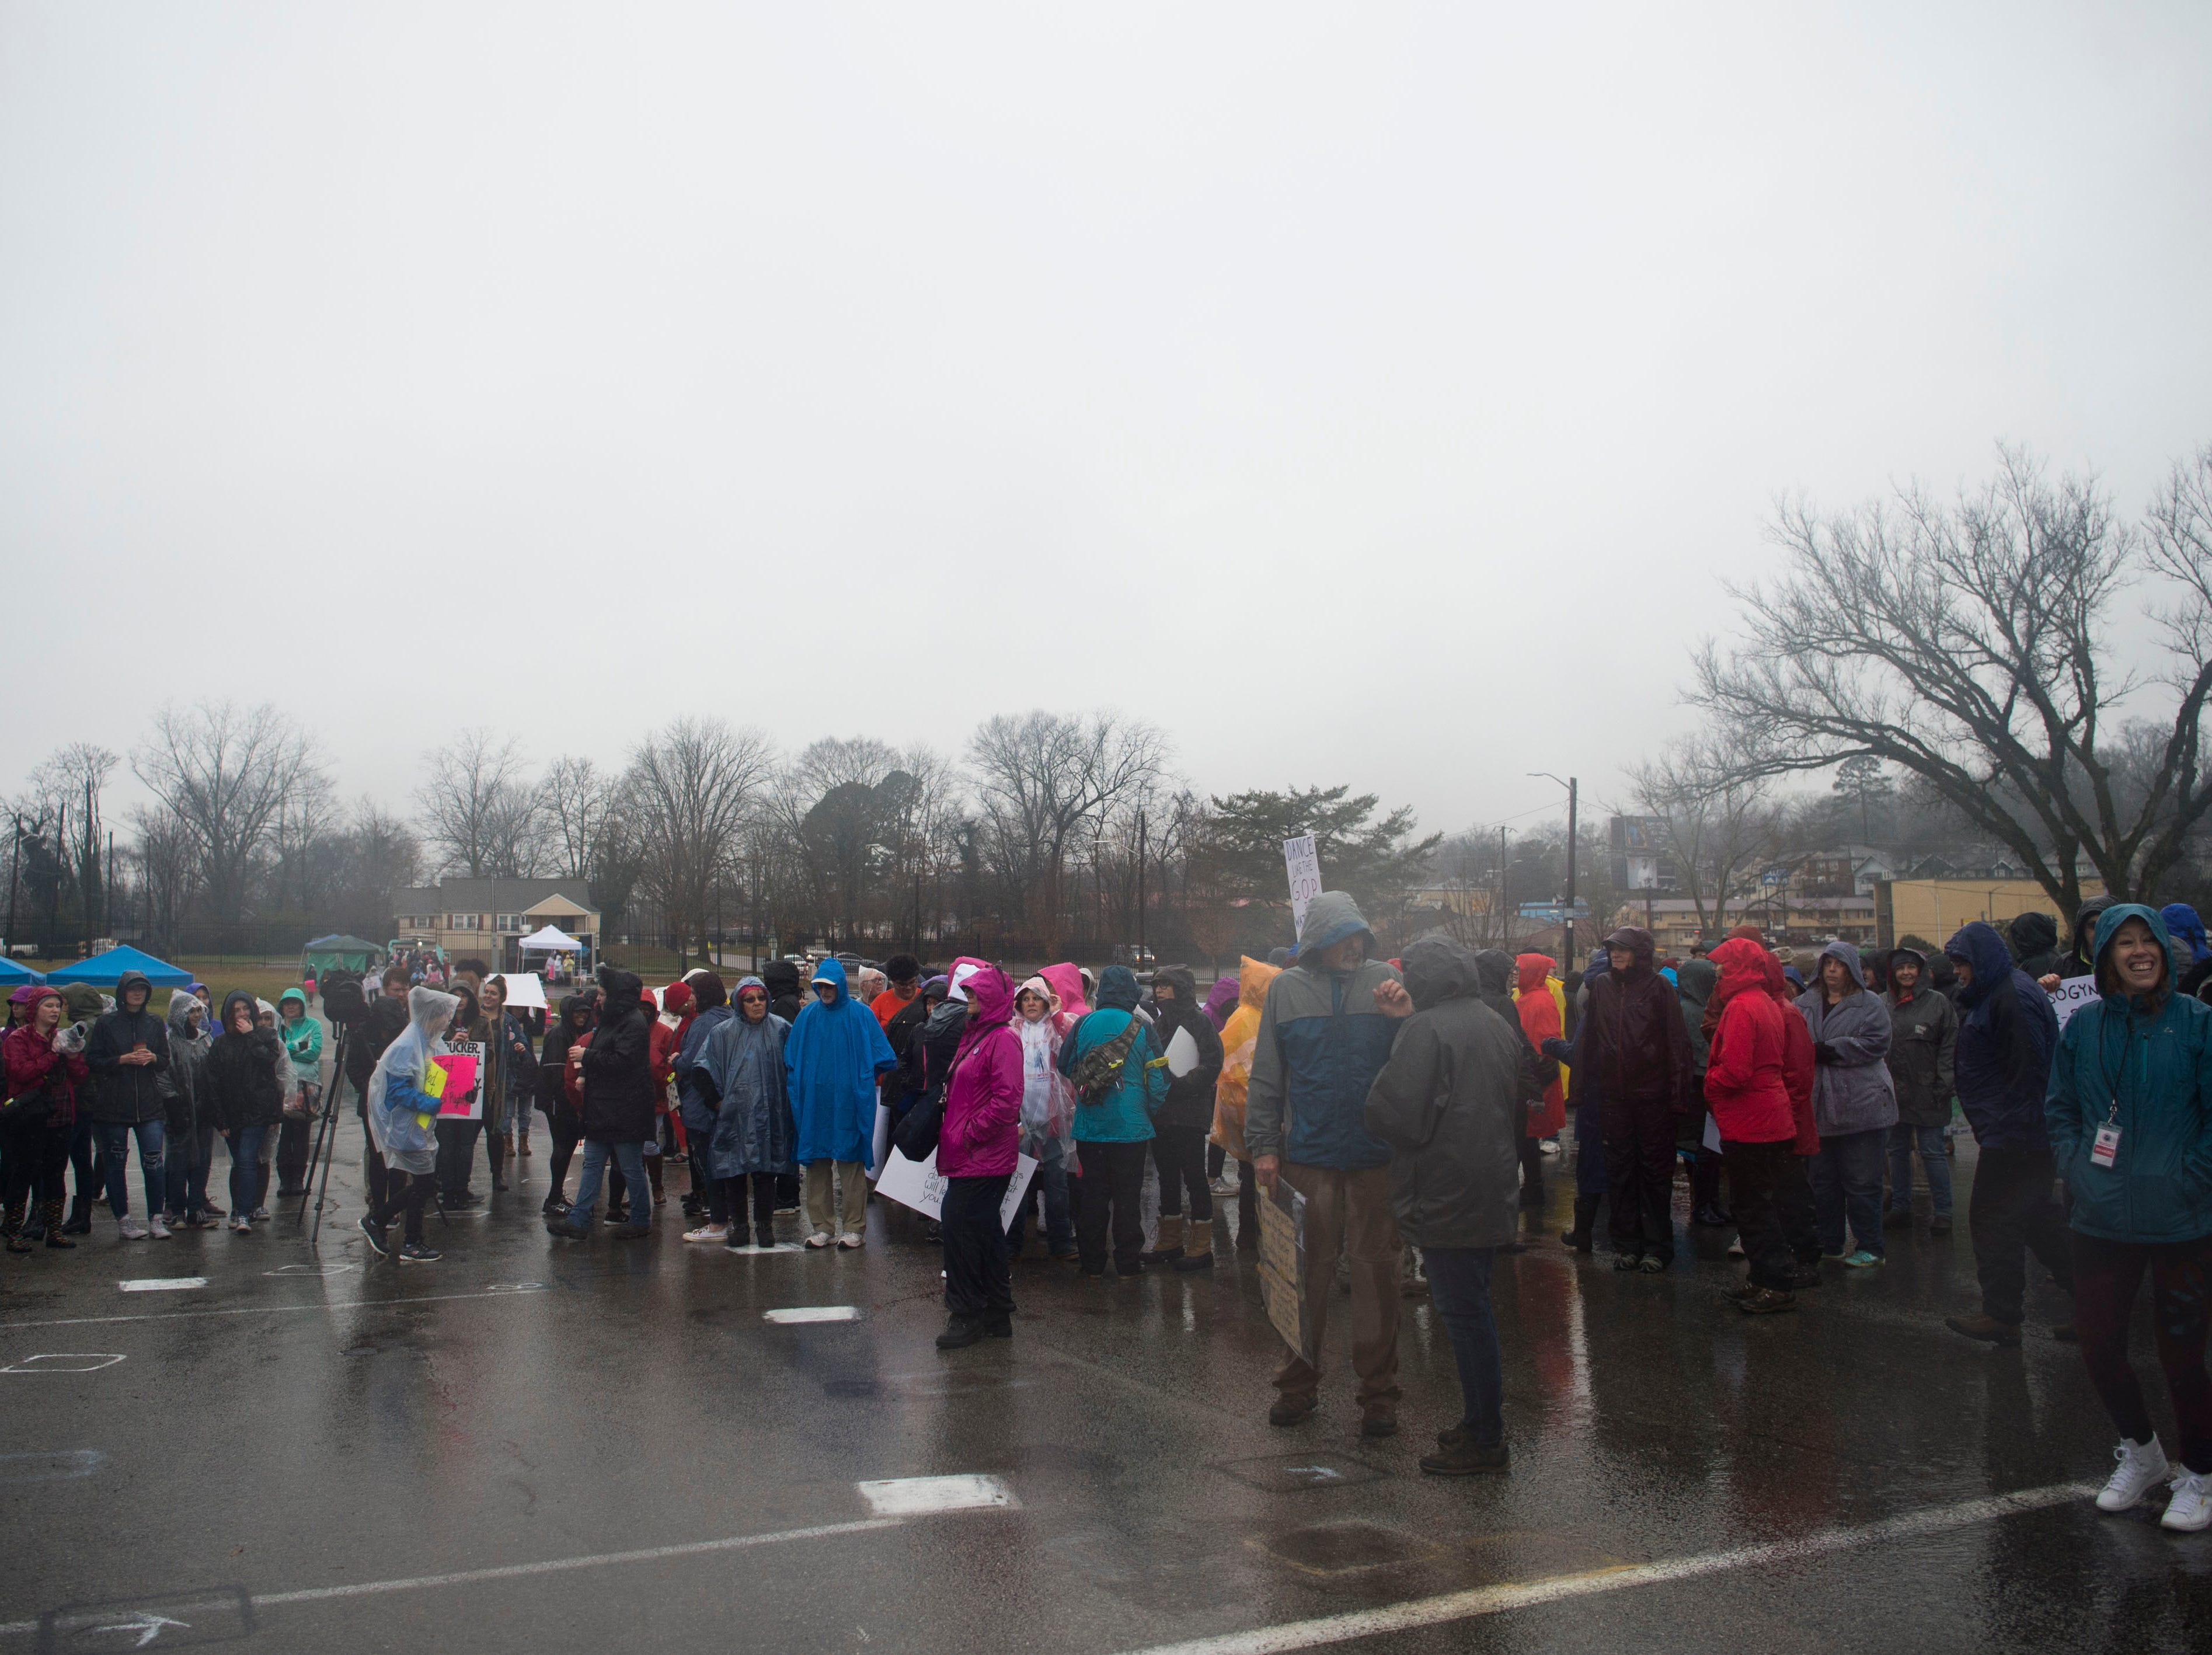 Attendees gather to listen to speeches during the 2019 Women's March in Chilhowee Park Saturday, Jan. 19, 2019.